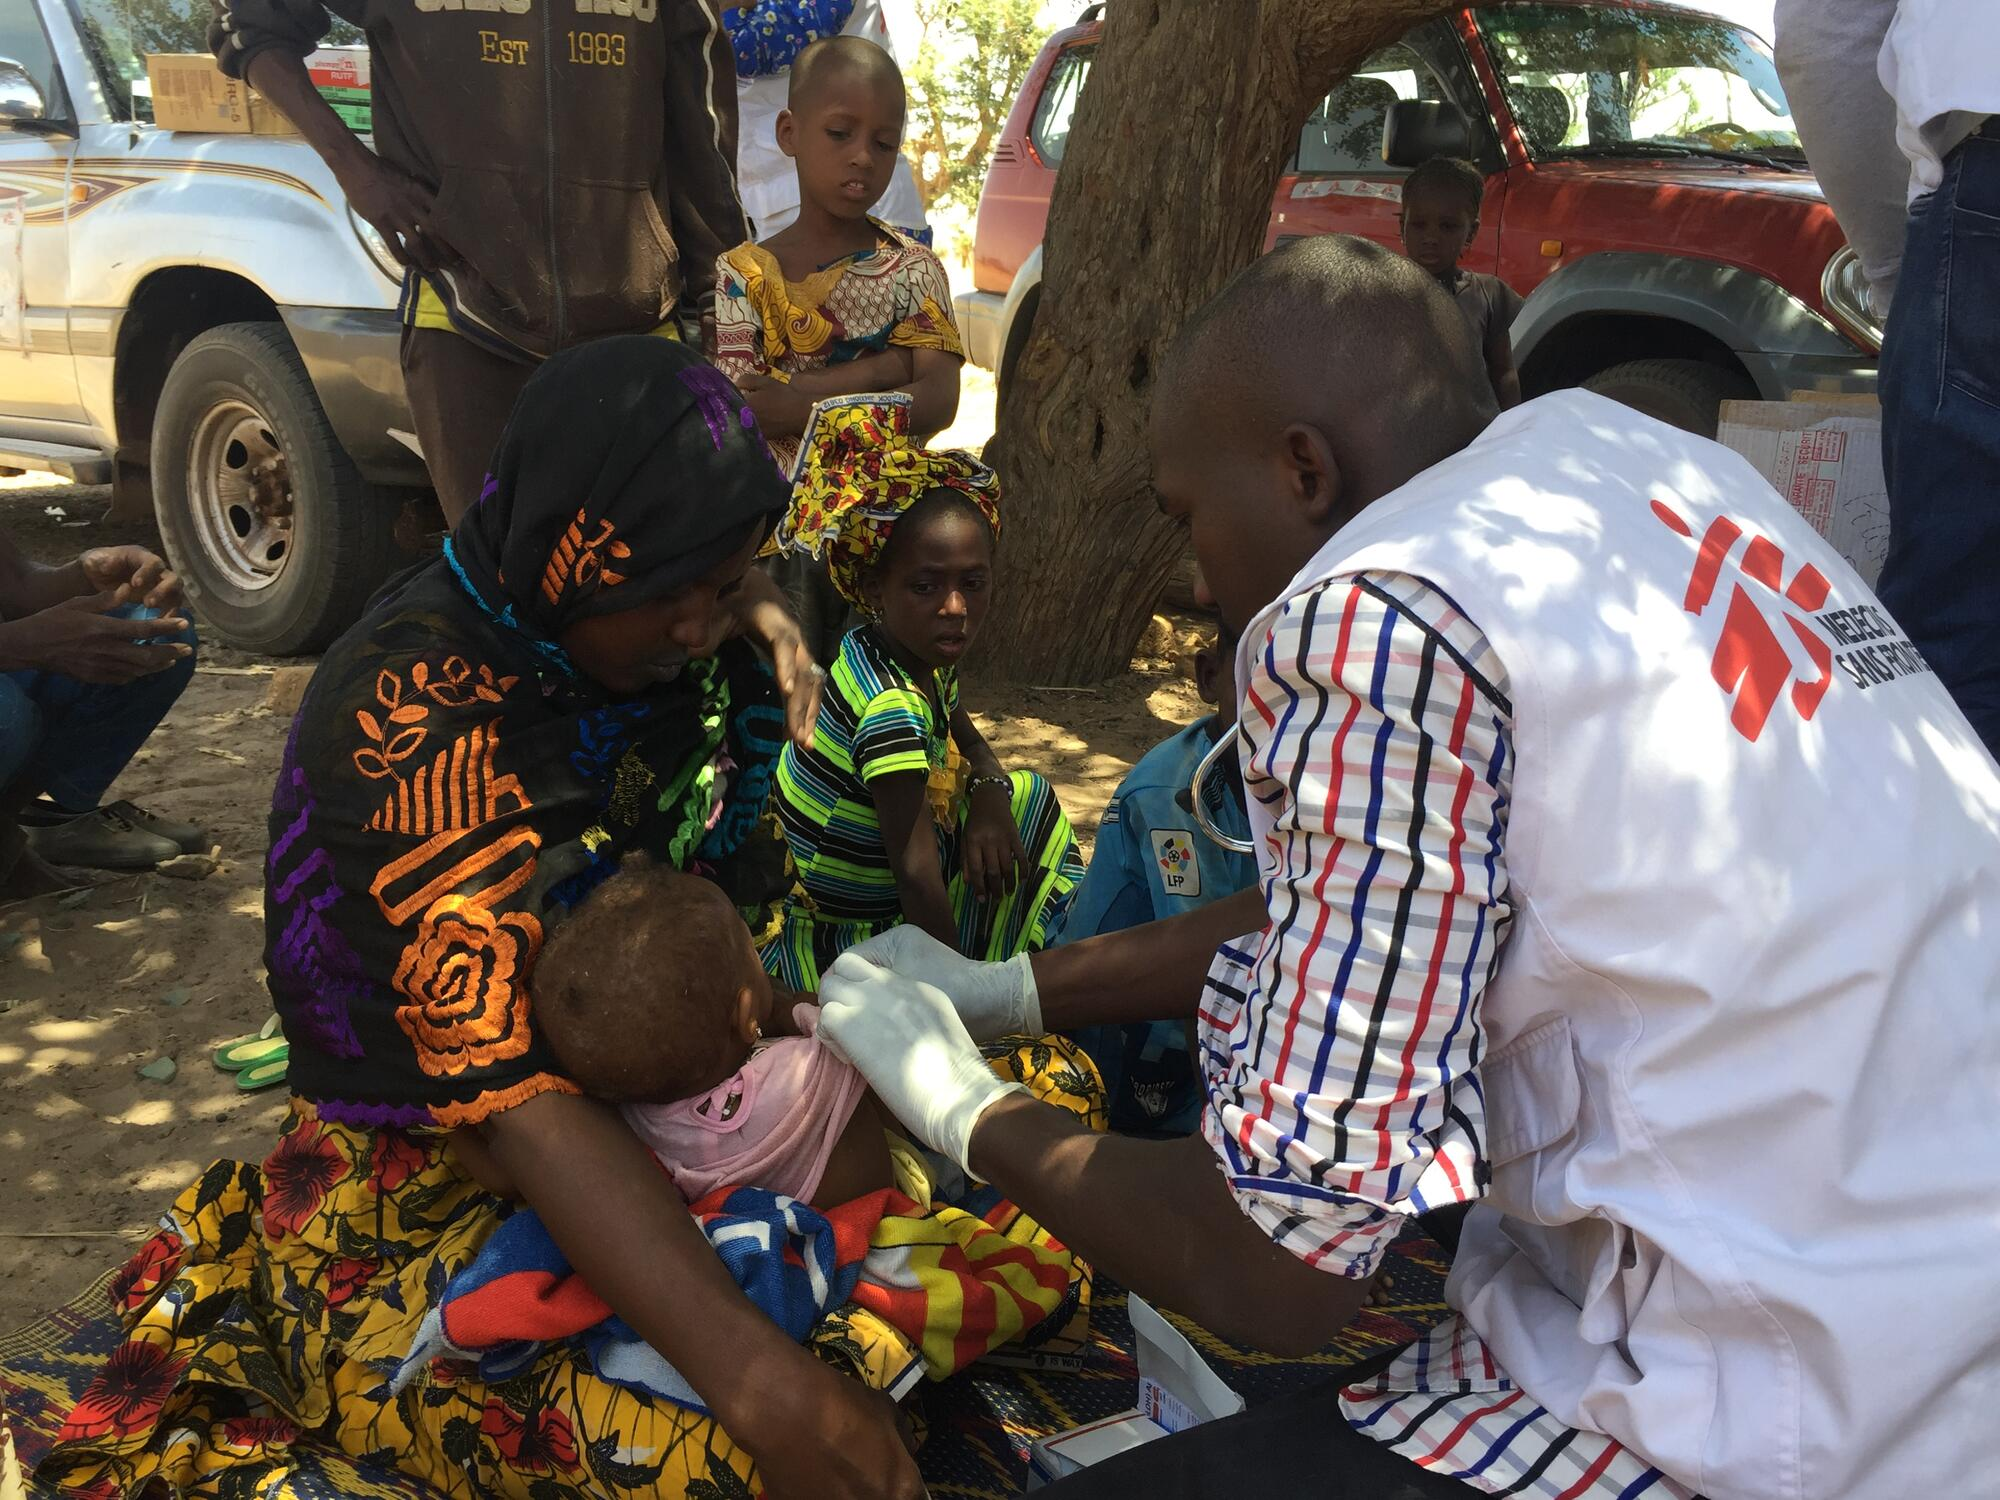 An MSF staff member treats a child in Ogossagou, Mali